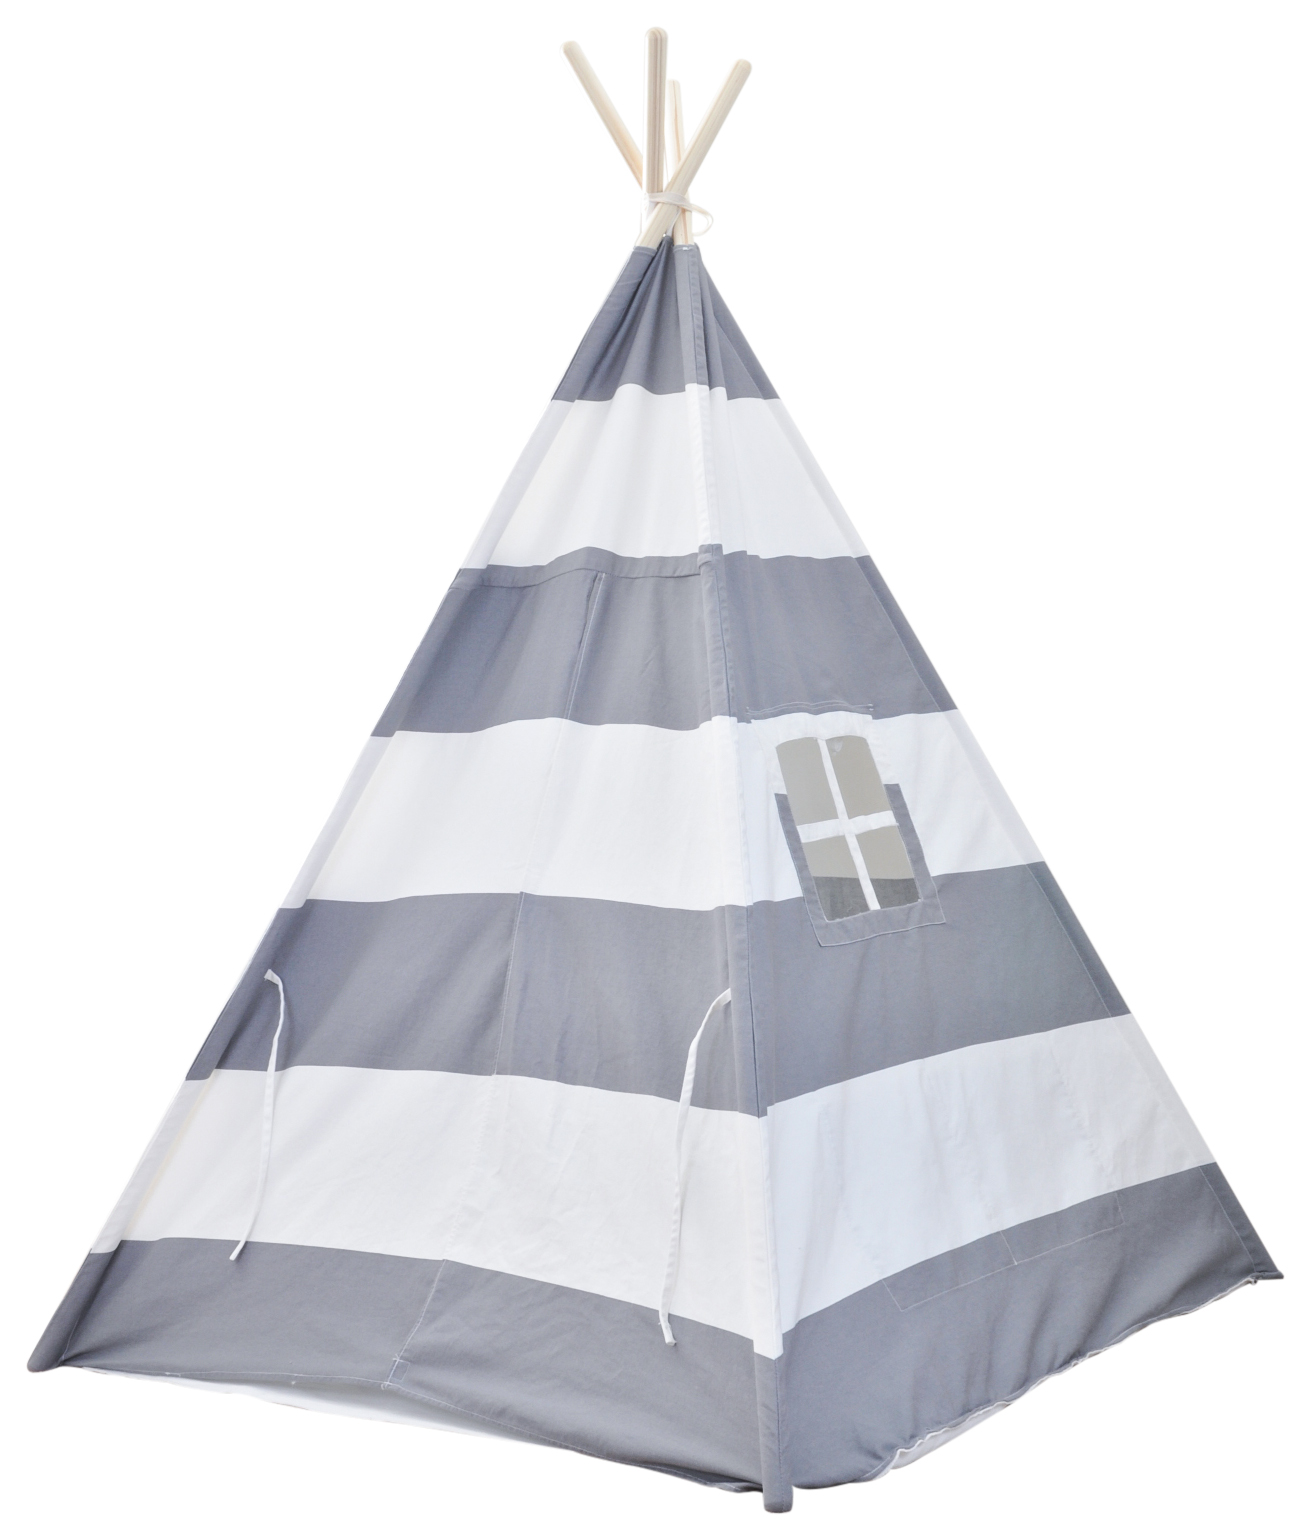 Portable Canvas Teepee Tents For Kids With Carrying Case